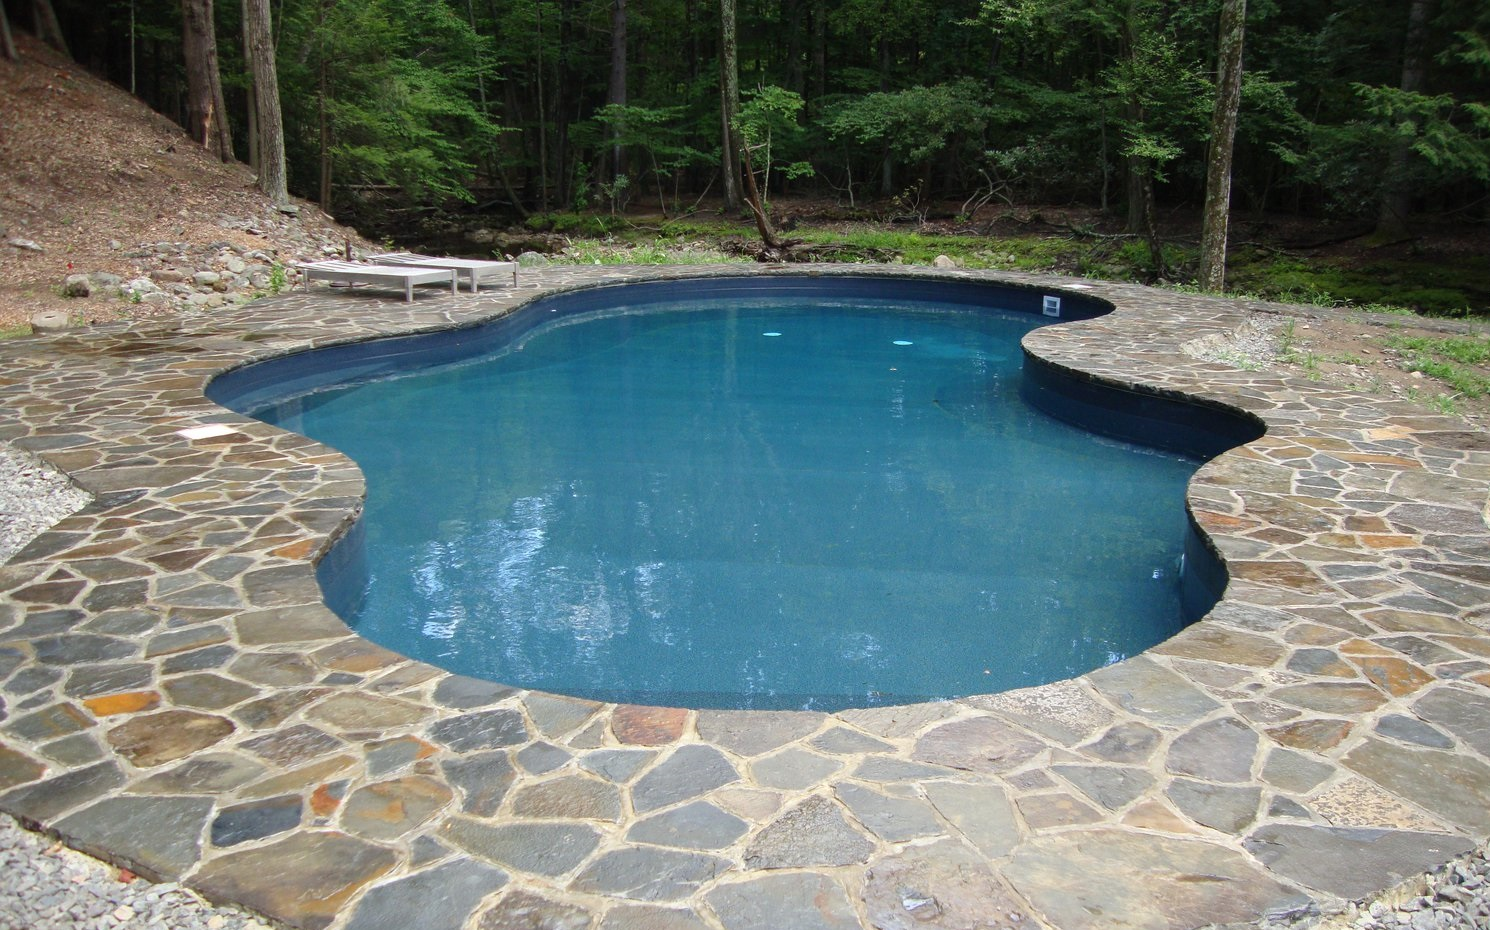 Natural Pool Designs For Small Backyards : Stunning Natural Artistic Modern Style Inground Pool Kits Design